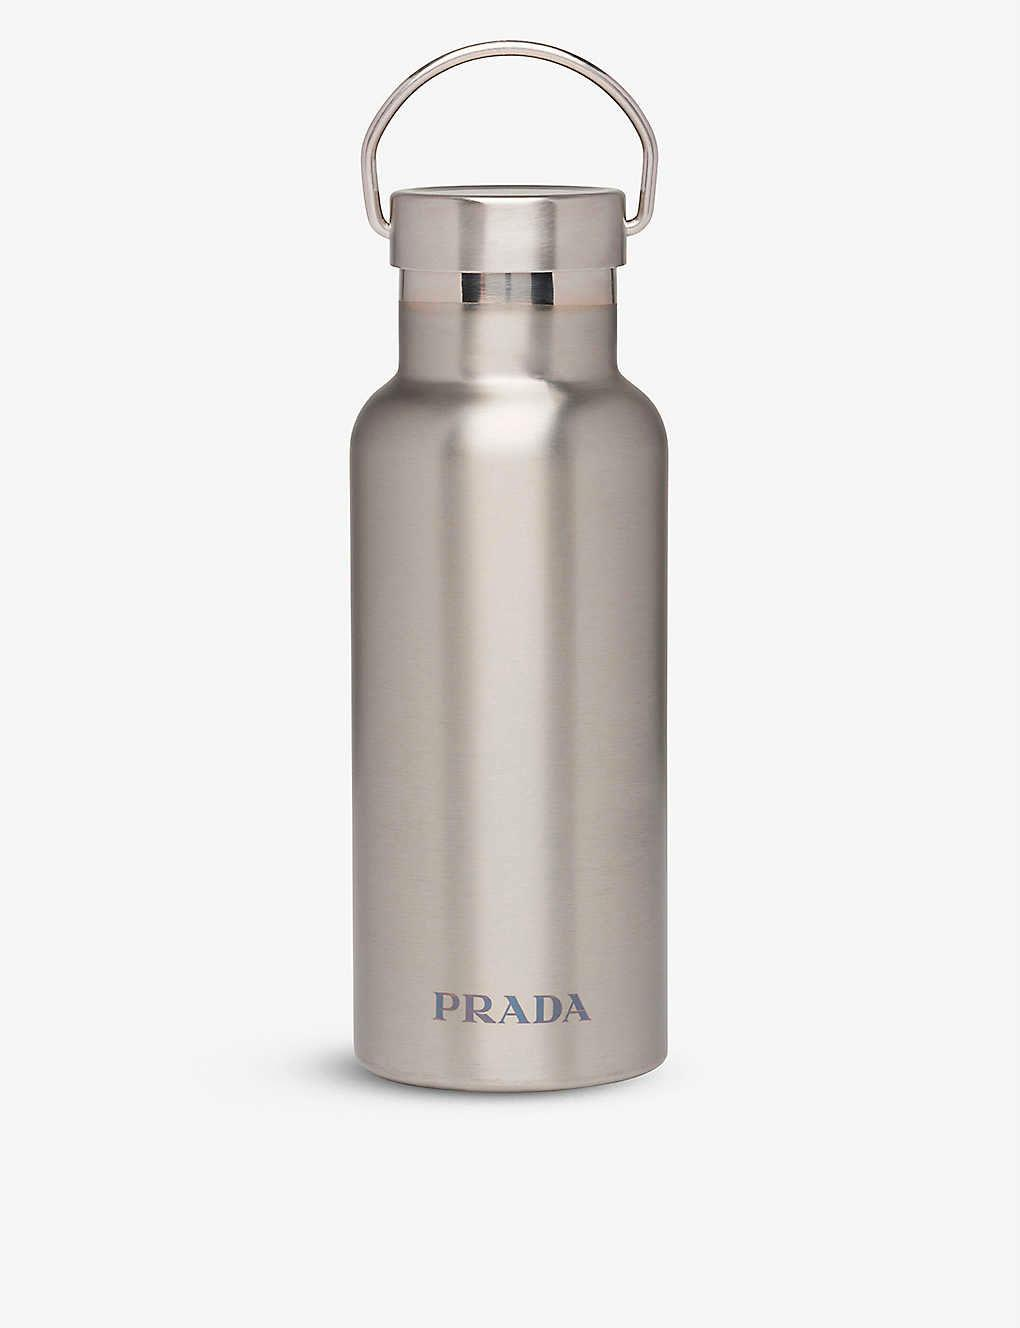 prada stainless steal water bottle for hot and cold drinks